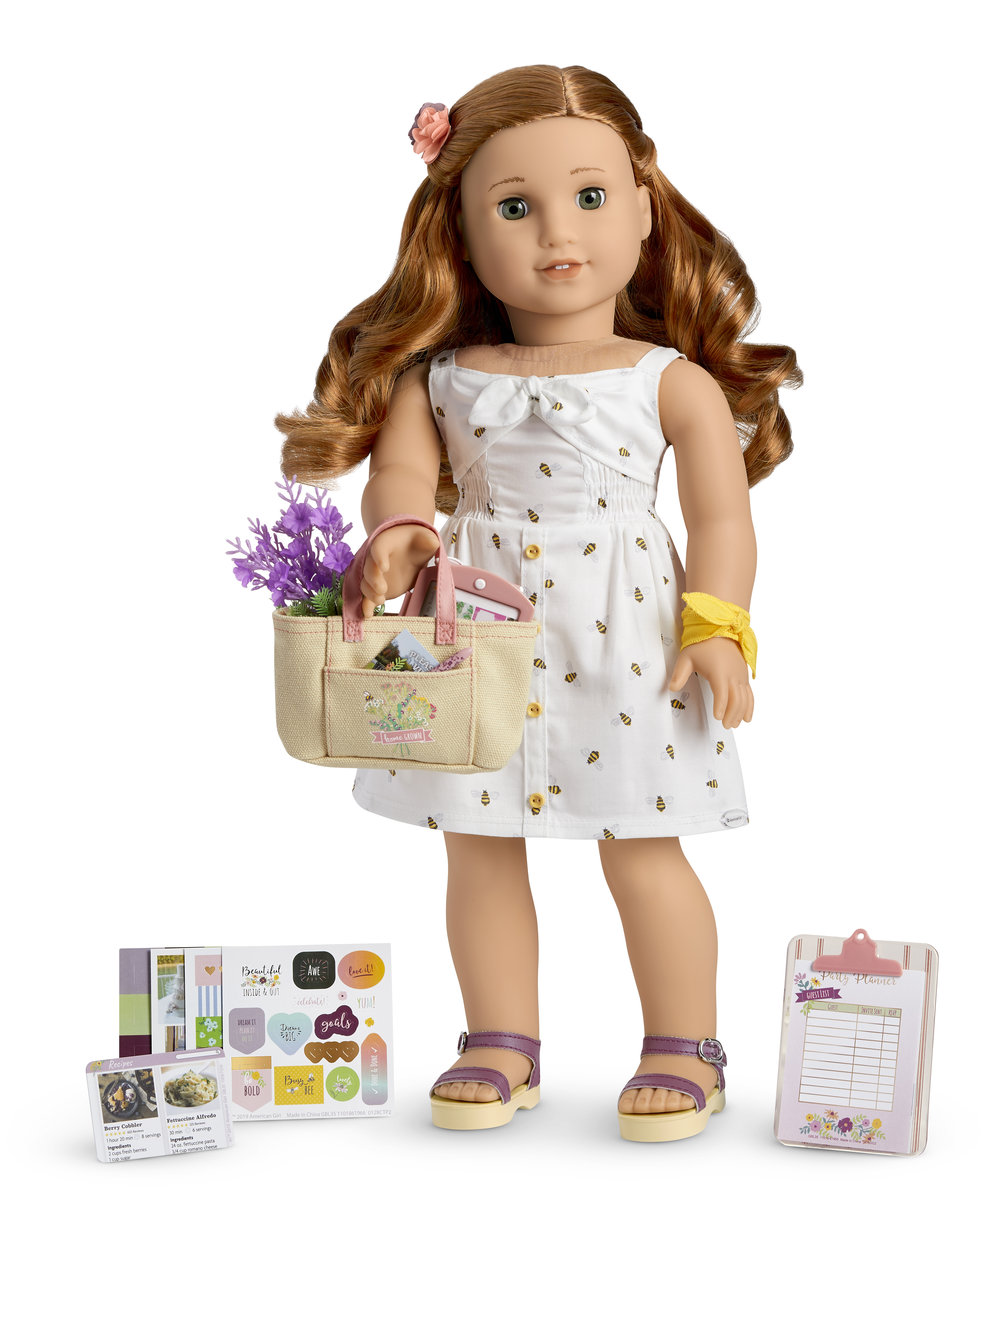 American Girl's 2019 Girl of the Year Is Blaire Wilson #AmericanGirl #AmericanGirlDoll #GOTY2019 #GOTY #BlaireWilson